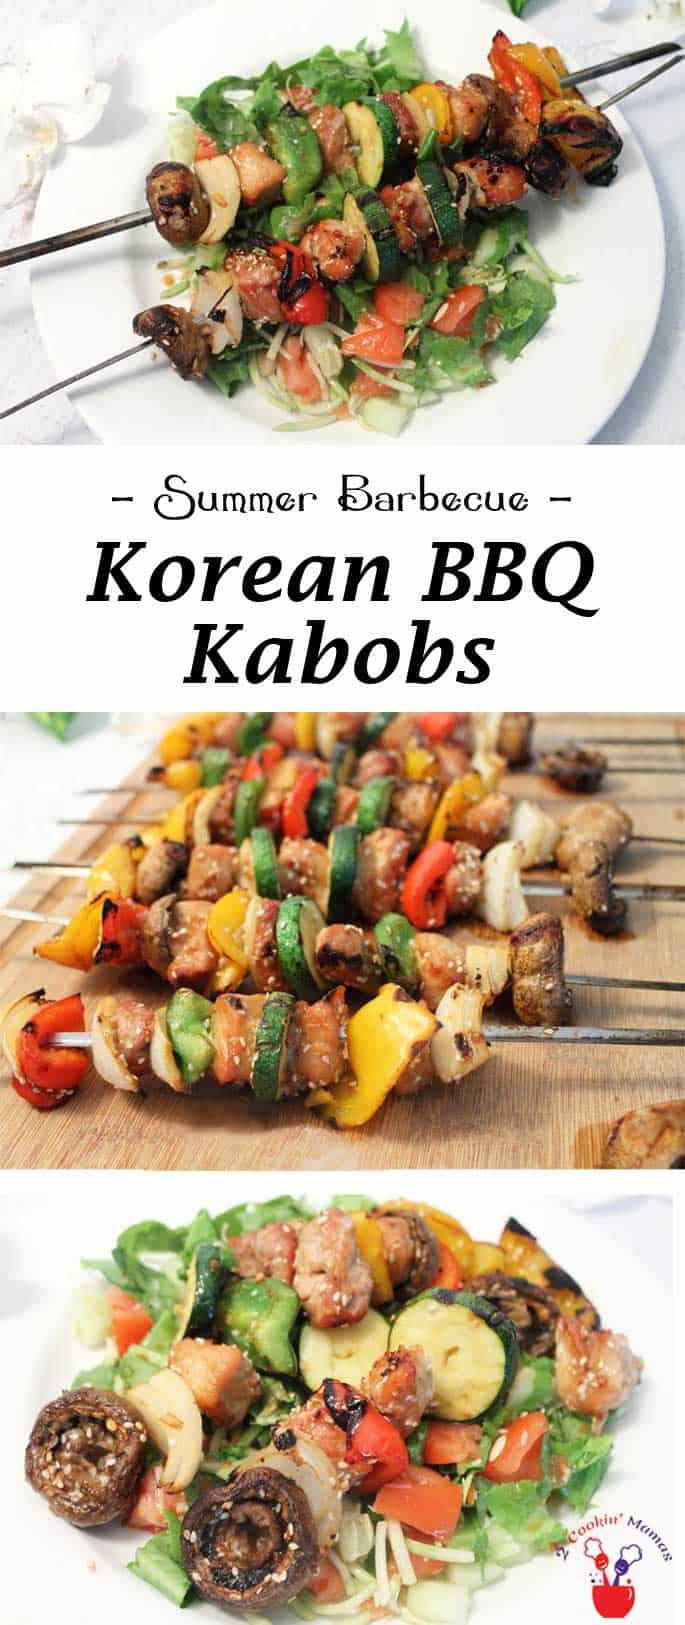 Nothing is easier or more delicious than Korean BBQ Kabobs. Choose your favorite meat & veggies, marinate, then grill. Dinner in 30! #30minutedinner #bulgogi #beefkabobs #Koreandish #porkdinner #grilleddinner